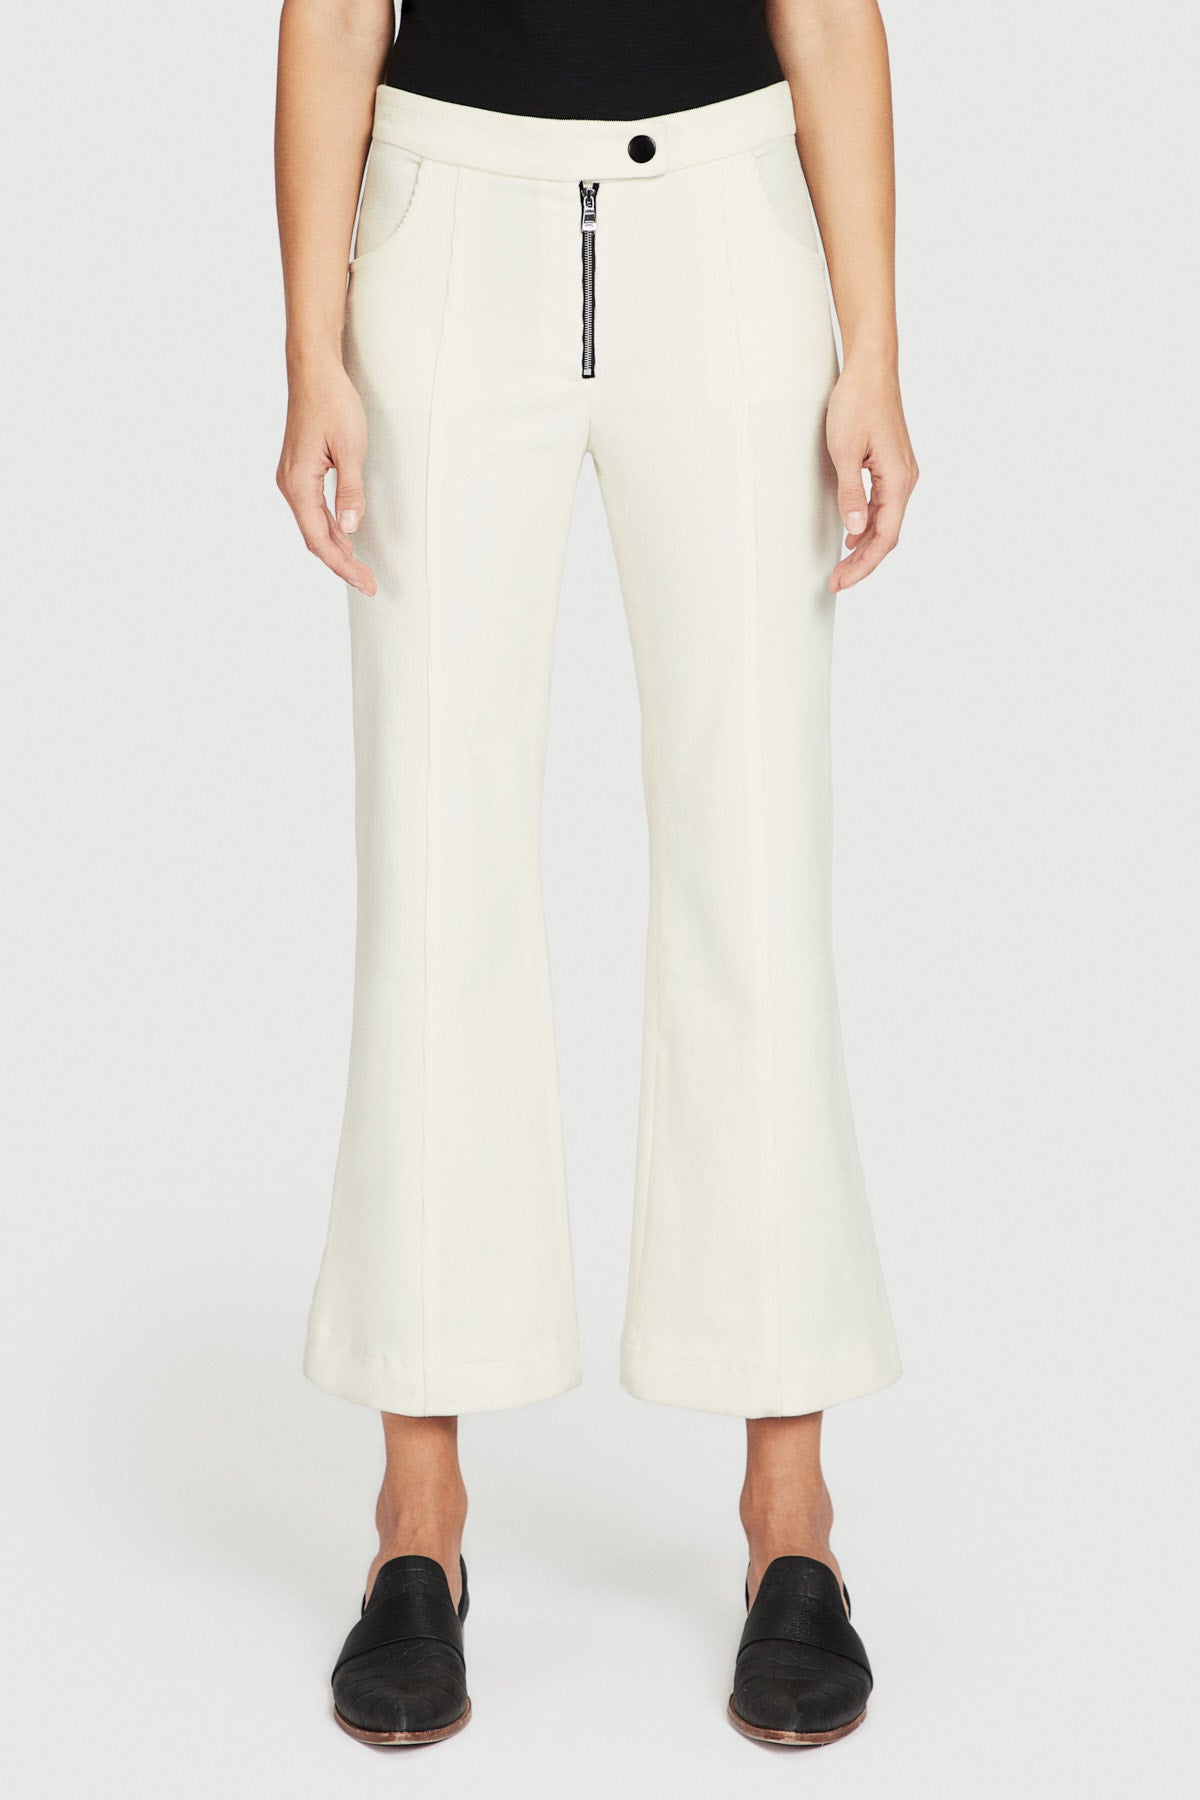 Off White Corduroy Cropped Flare Pant